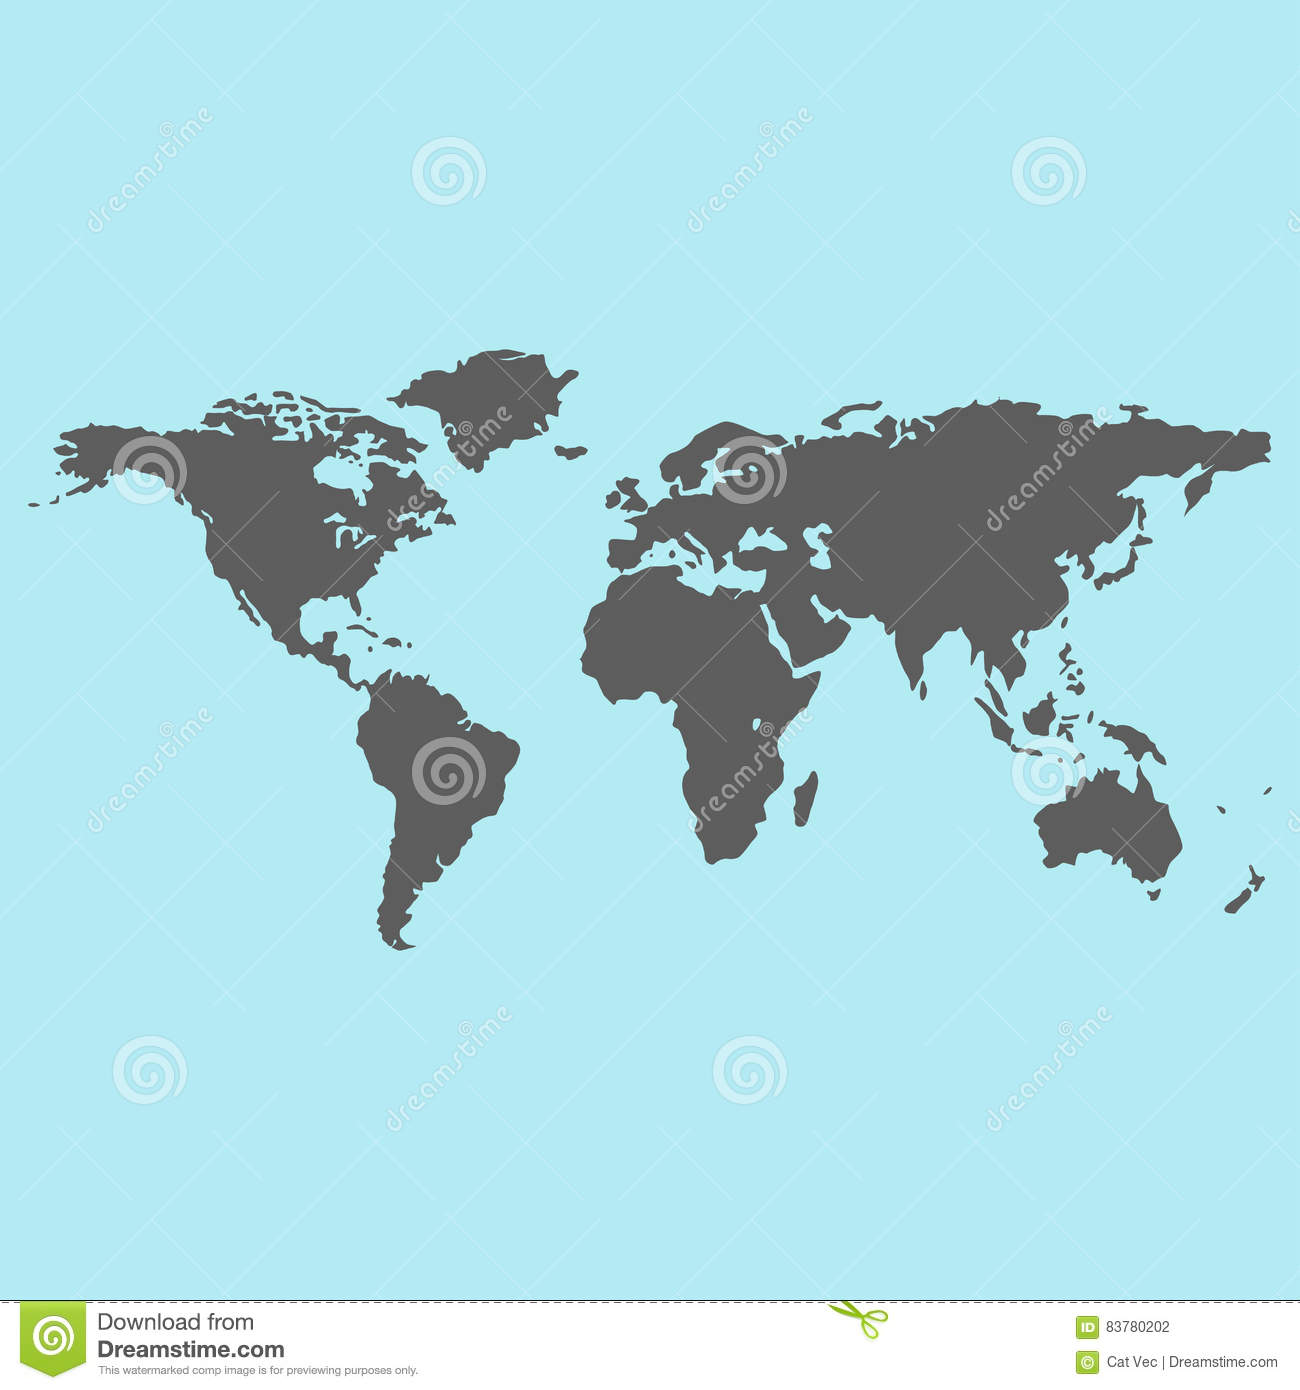 Globe world map icon vector stock vector illustration of icon globe world map icon vector royalty free vector gumiabroncs